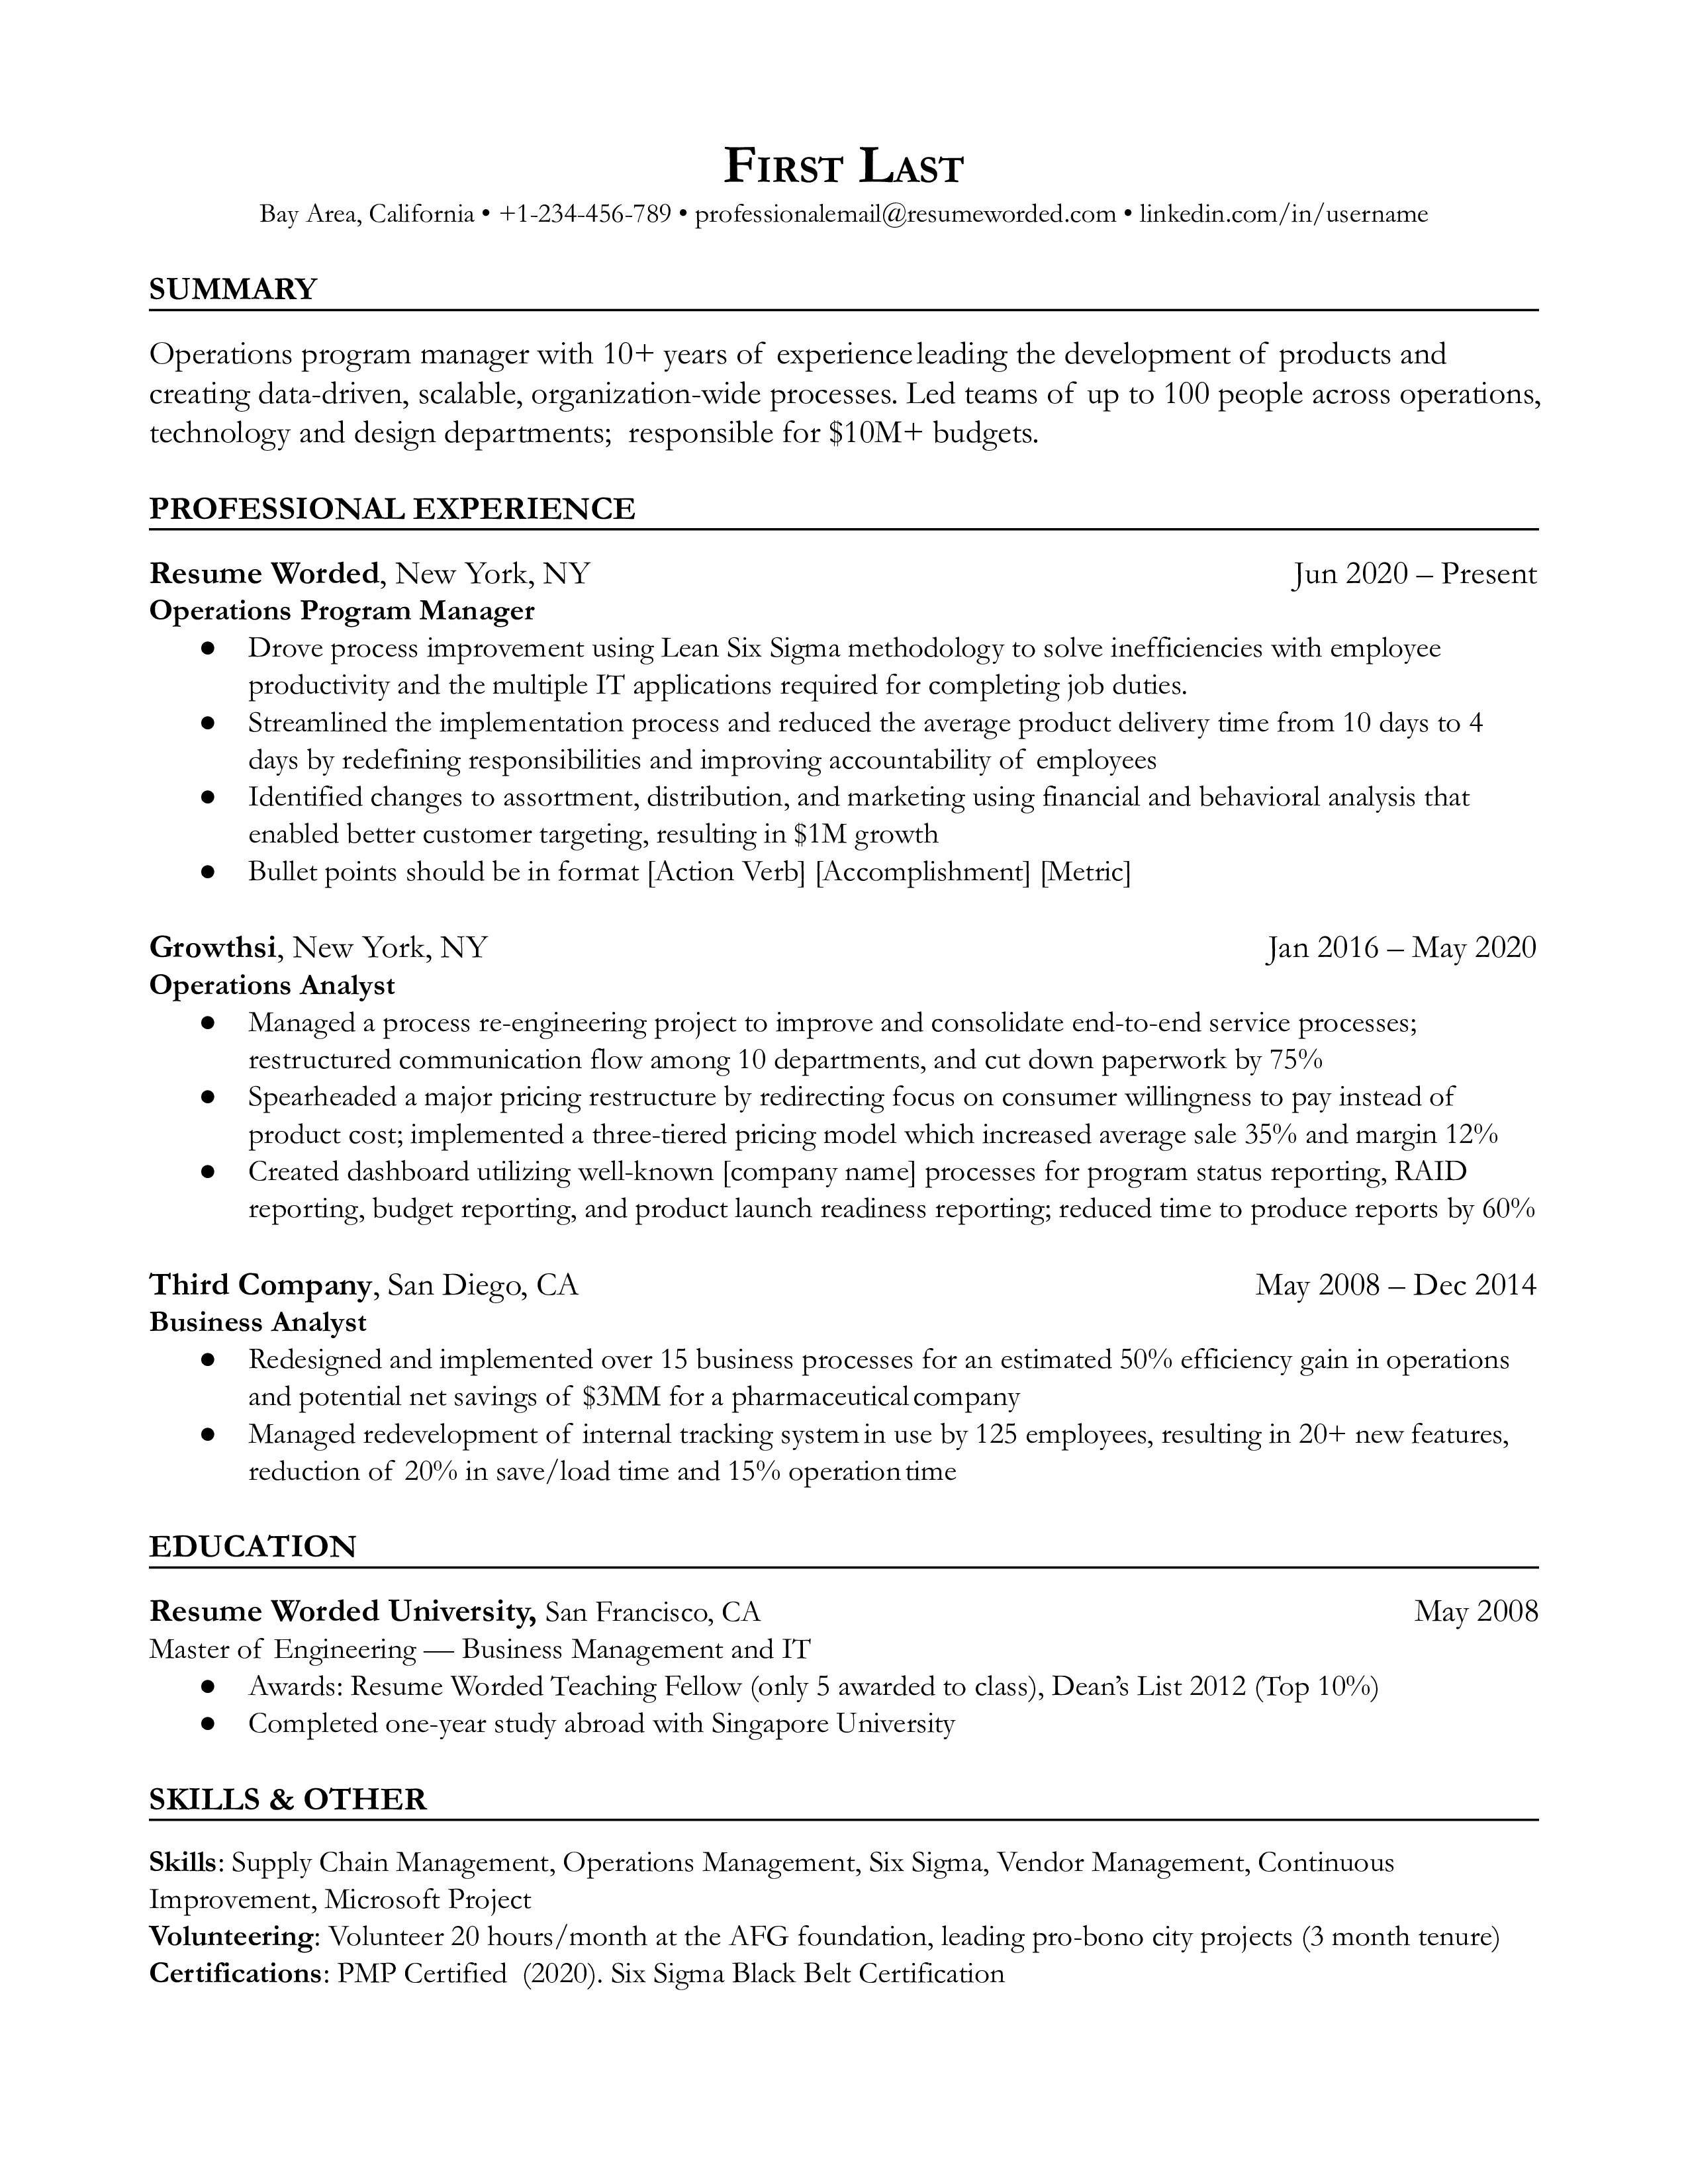 A technical program manager resume template with quantifiable achievements, simple bullet points and sub bullet points, technical skills and relevant certifications.